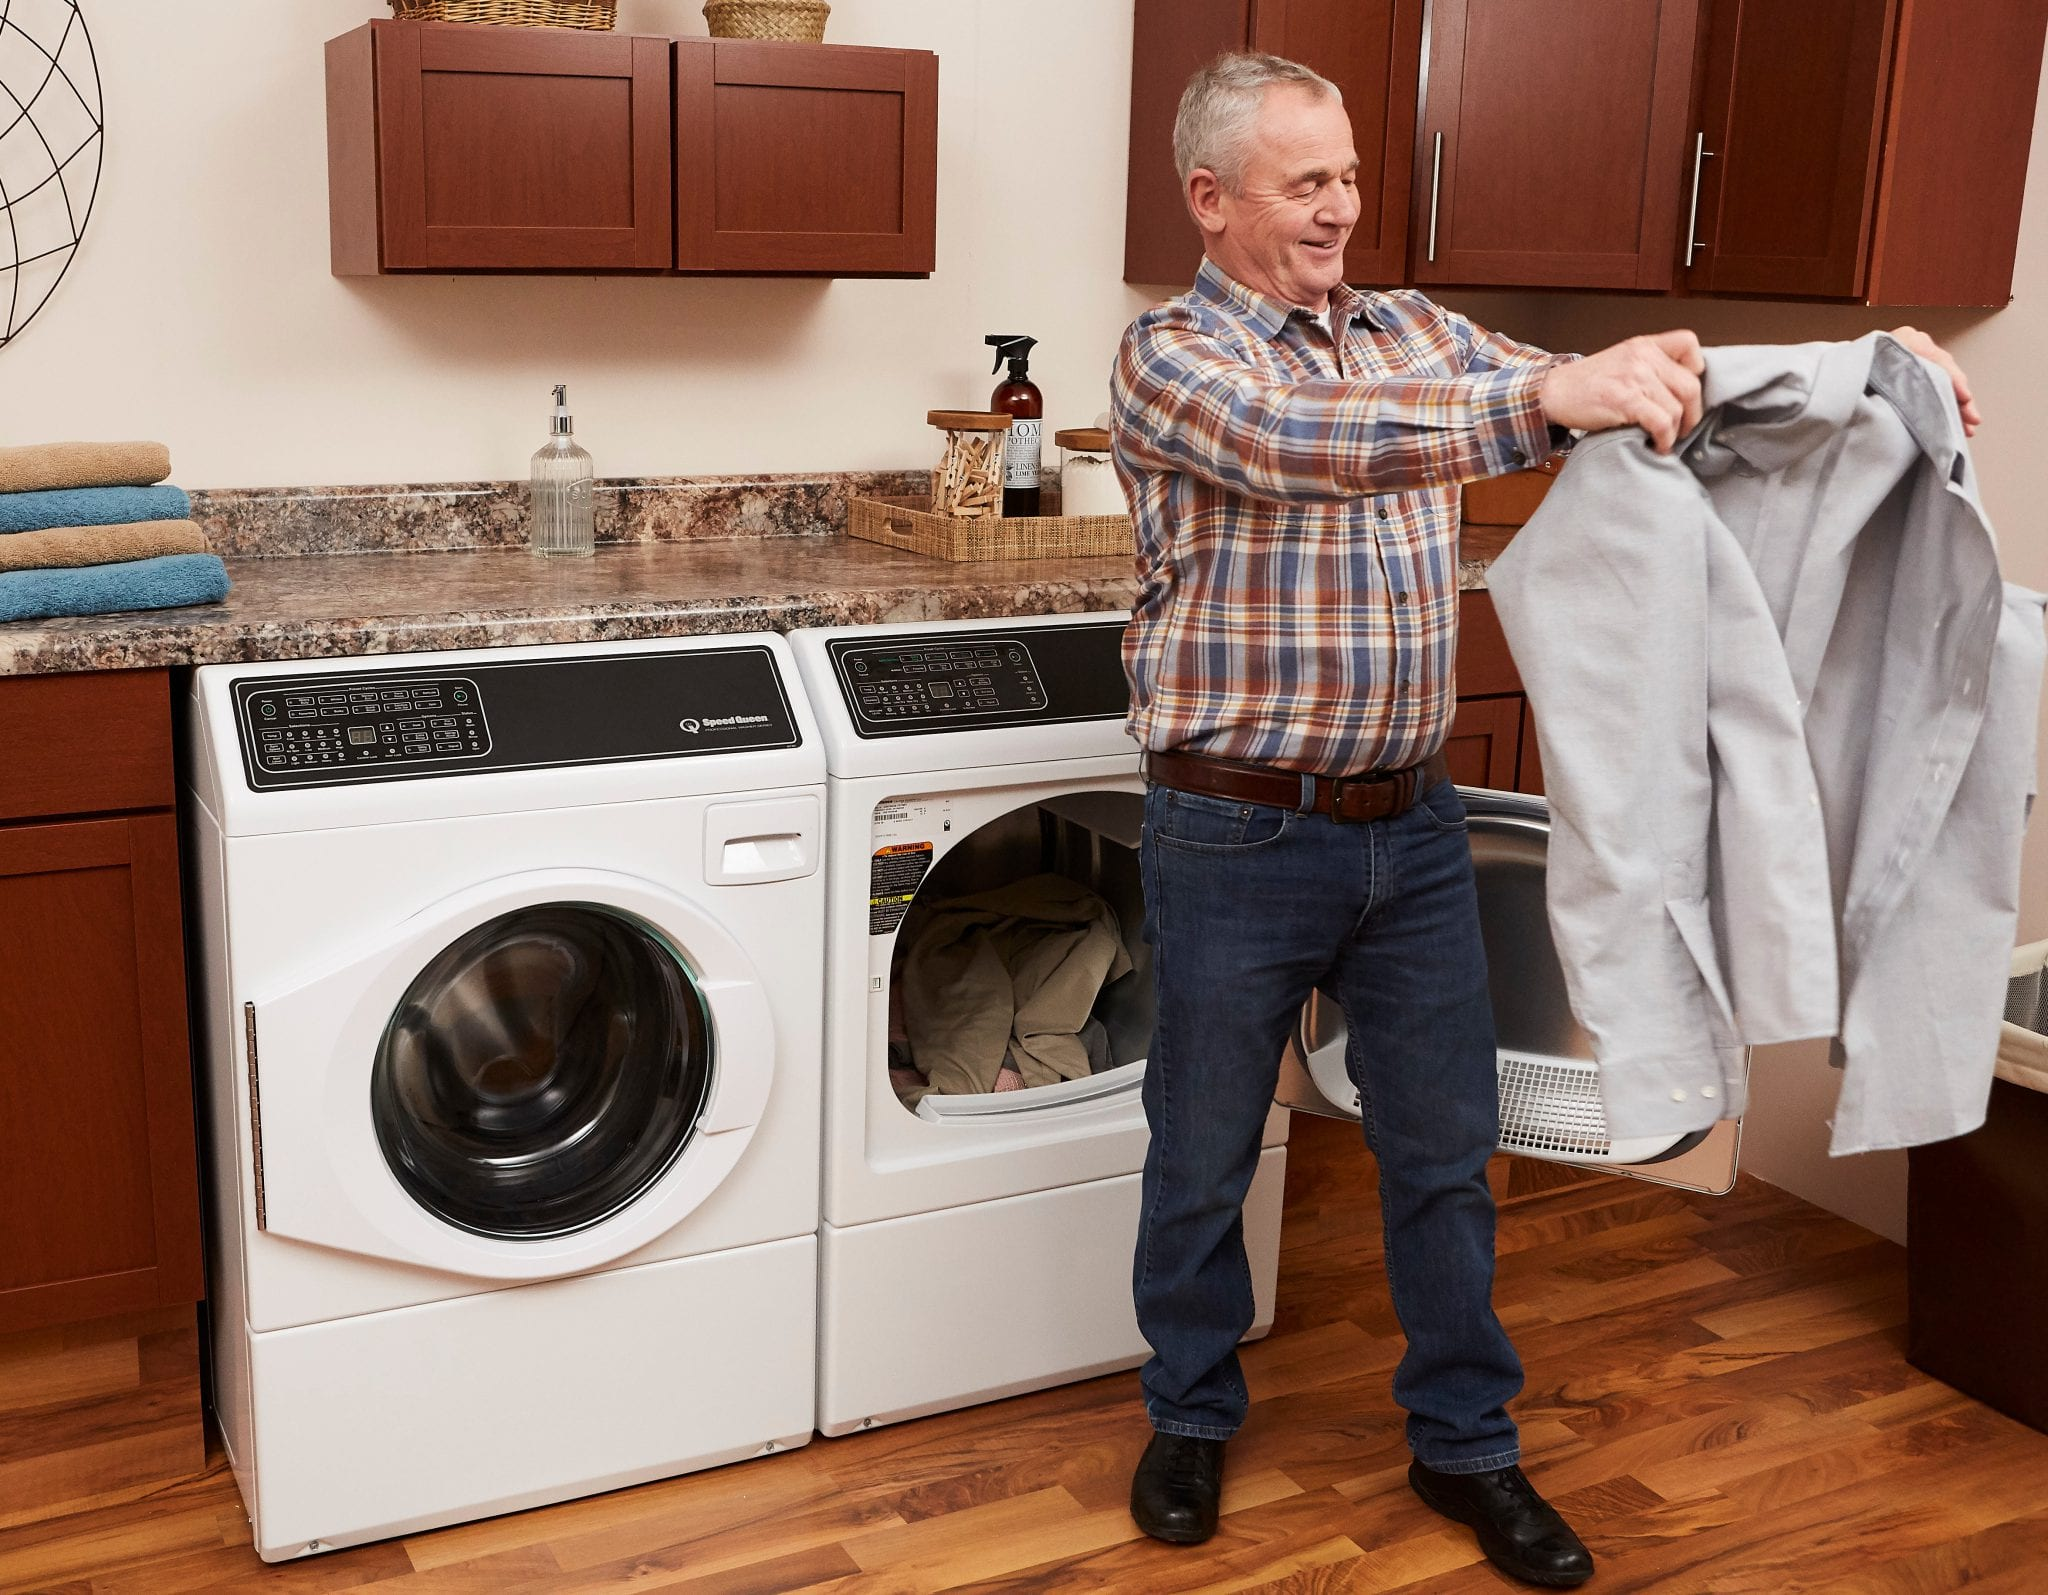 Speed Queen dryers proven to sanitize loads